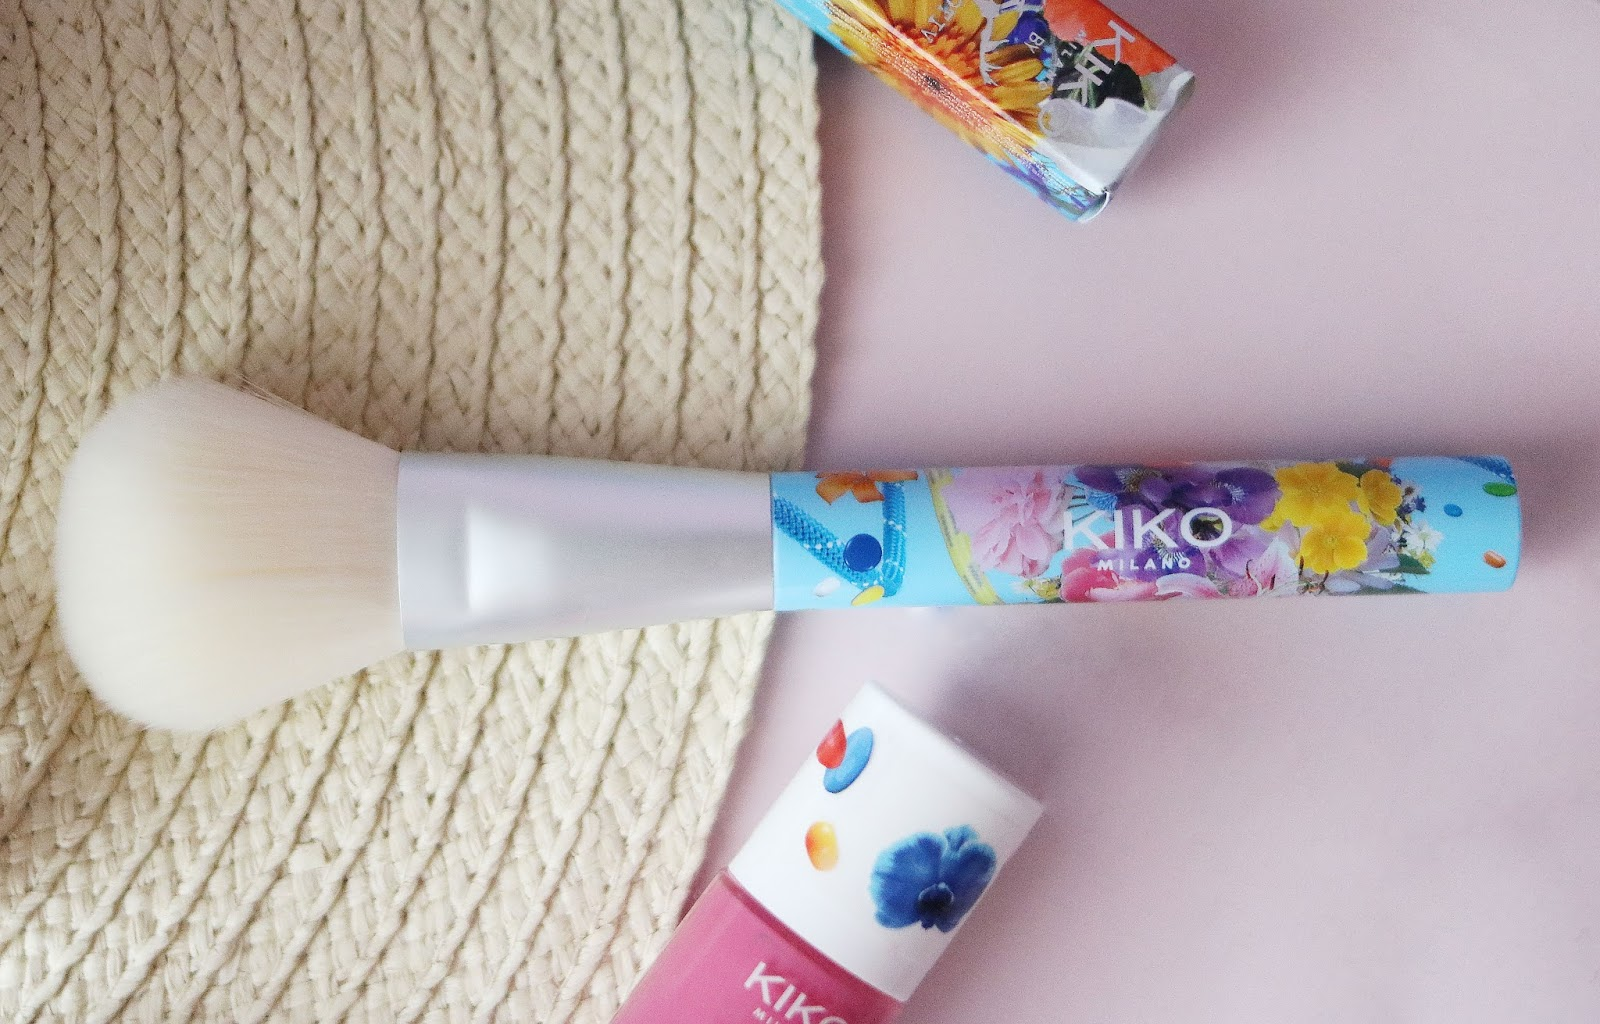 TROPIC HEAT , kiko milano, 20th anniversary , vogue italie , rose mademoiselle , rosemademoiselle , blog beauté , paris , revue , avis , tropi heat collection capsule